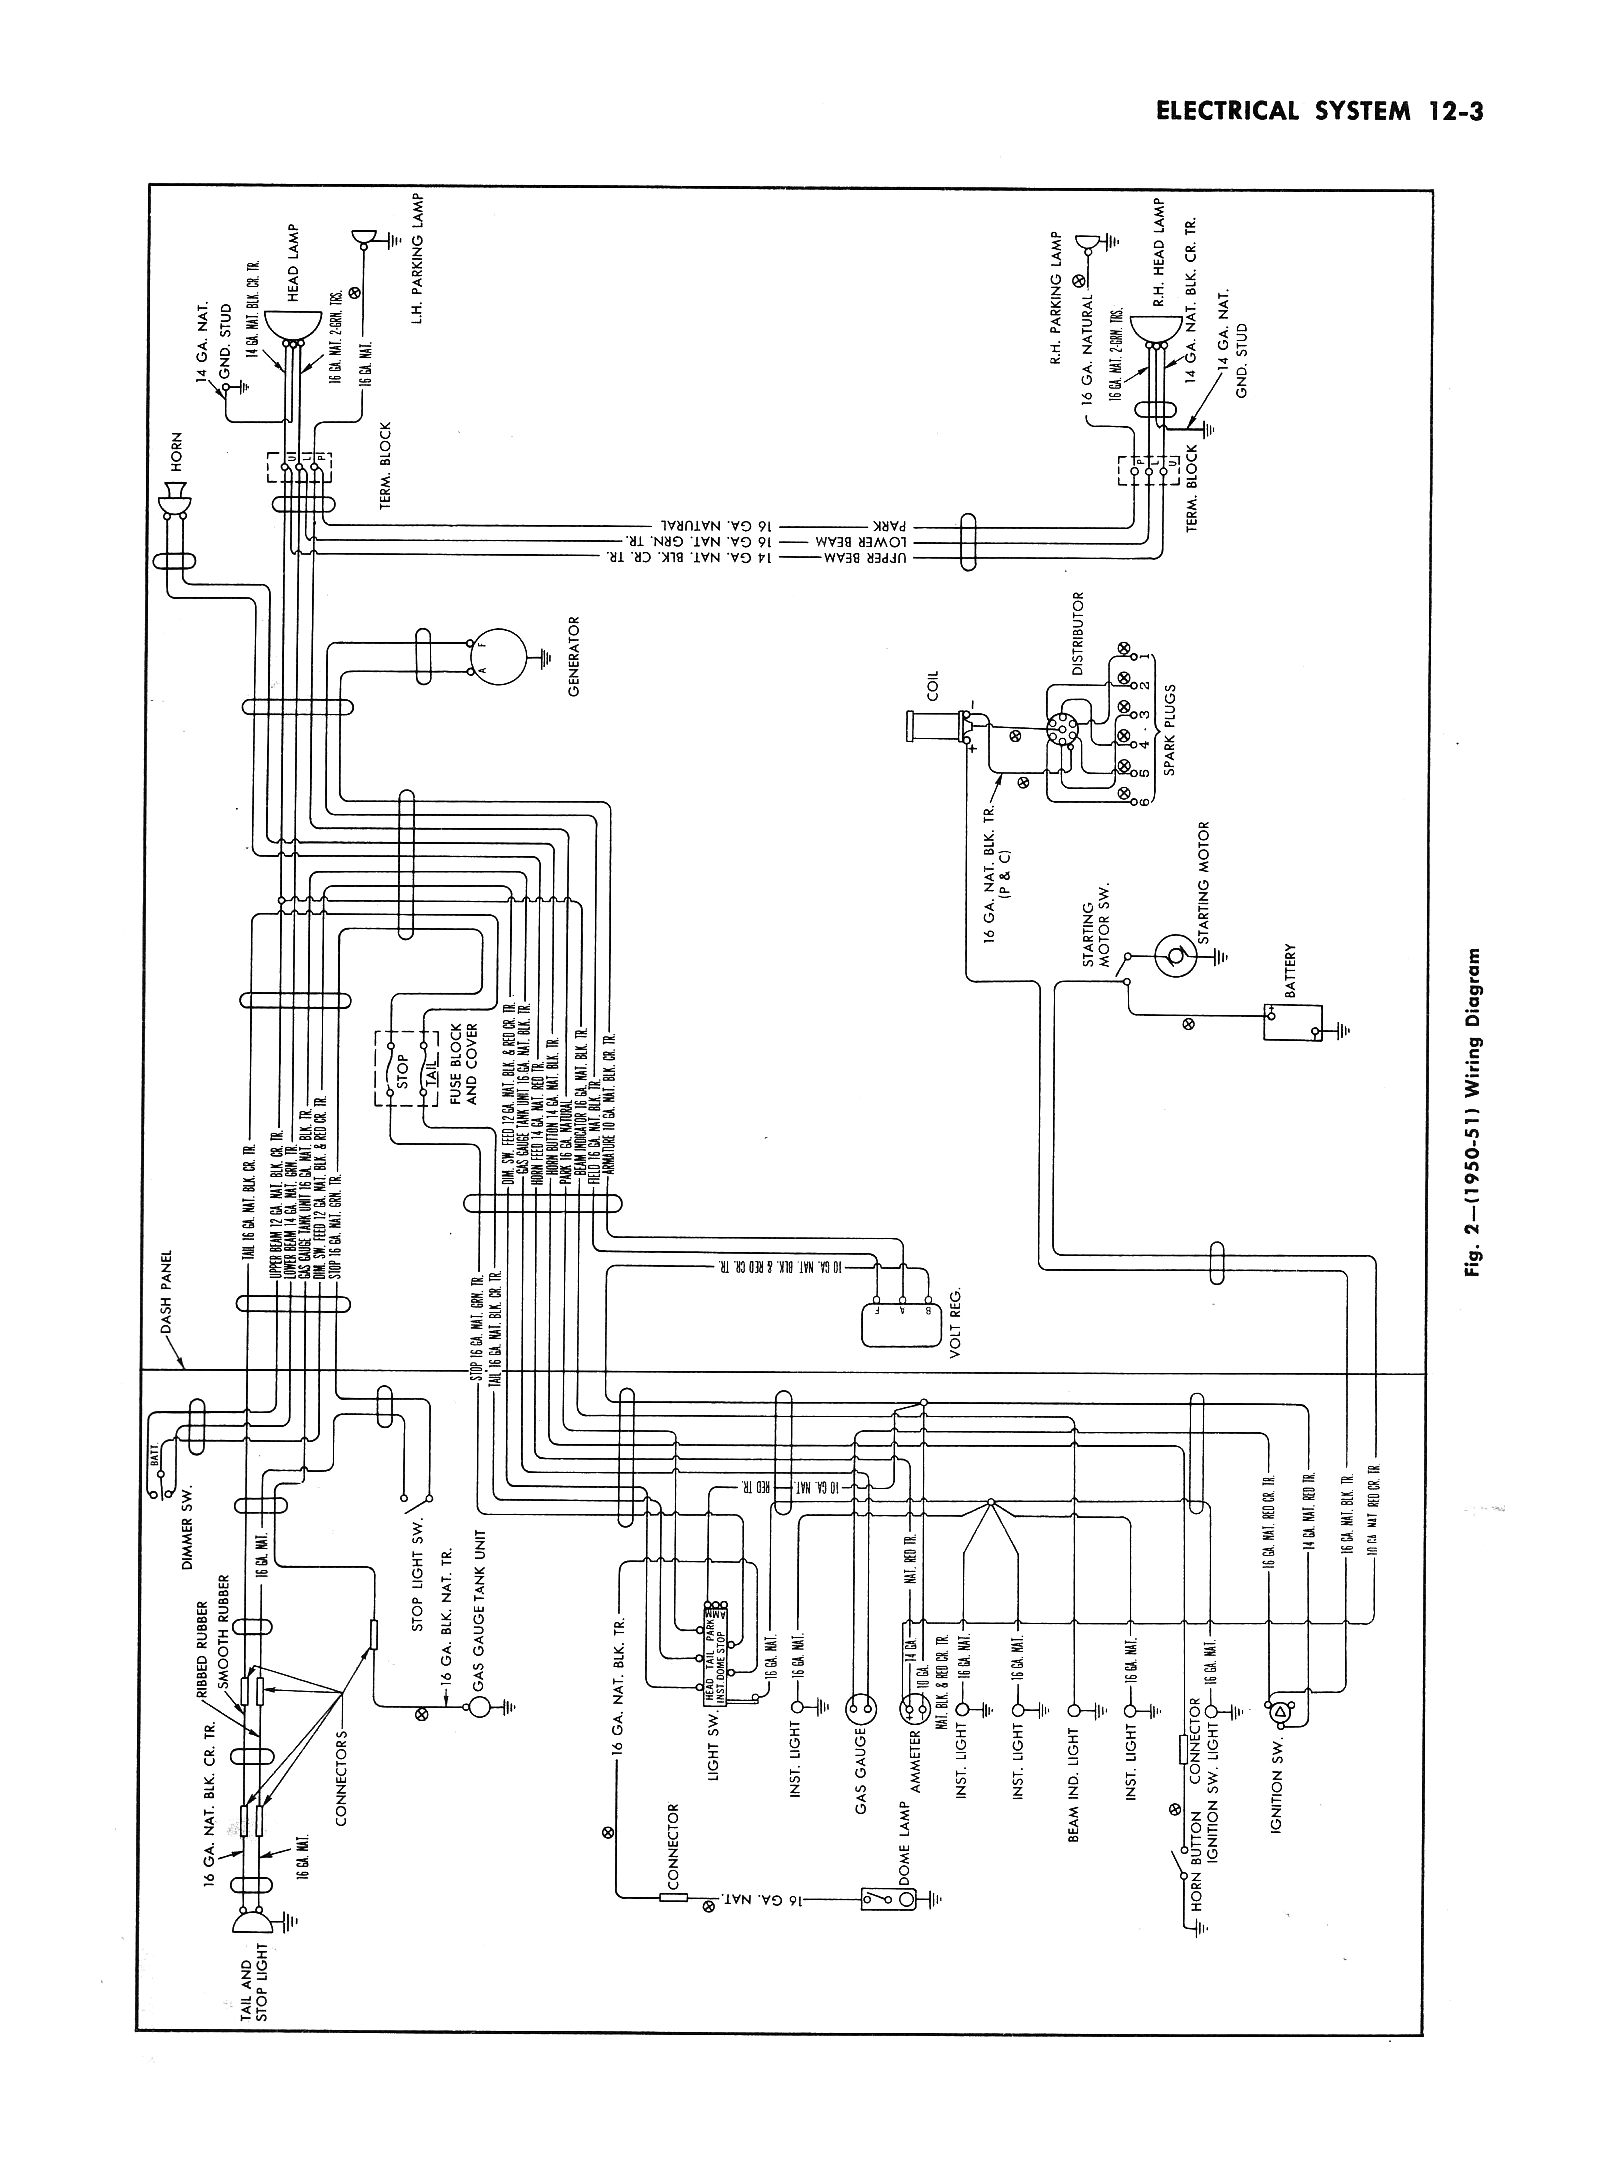 1959 Chevy Pickup Wiring Diagram Data Wiring Schema 1991 Chevy 1500 Wiring  Diagram 1996 Chevy 1500 Wiring Diagram Pdf